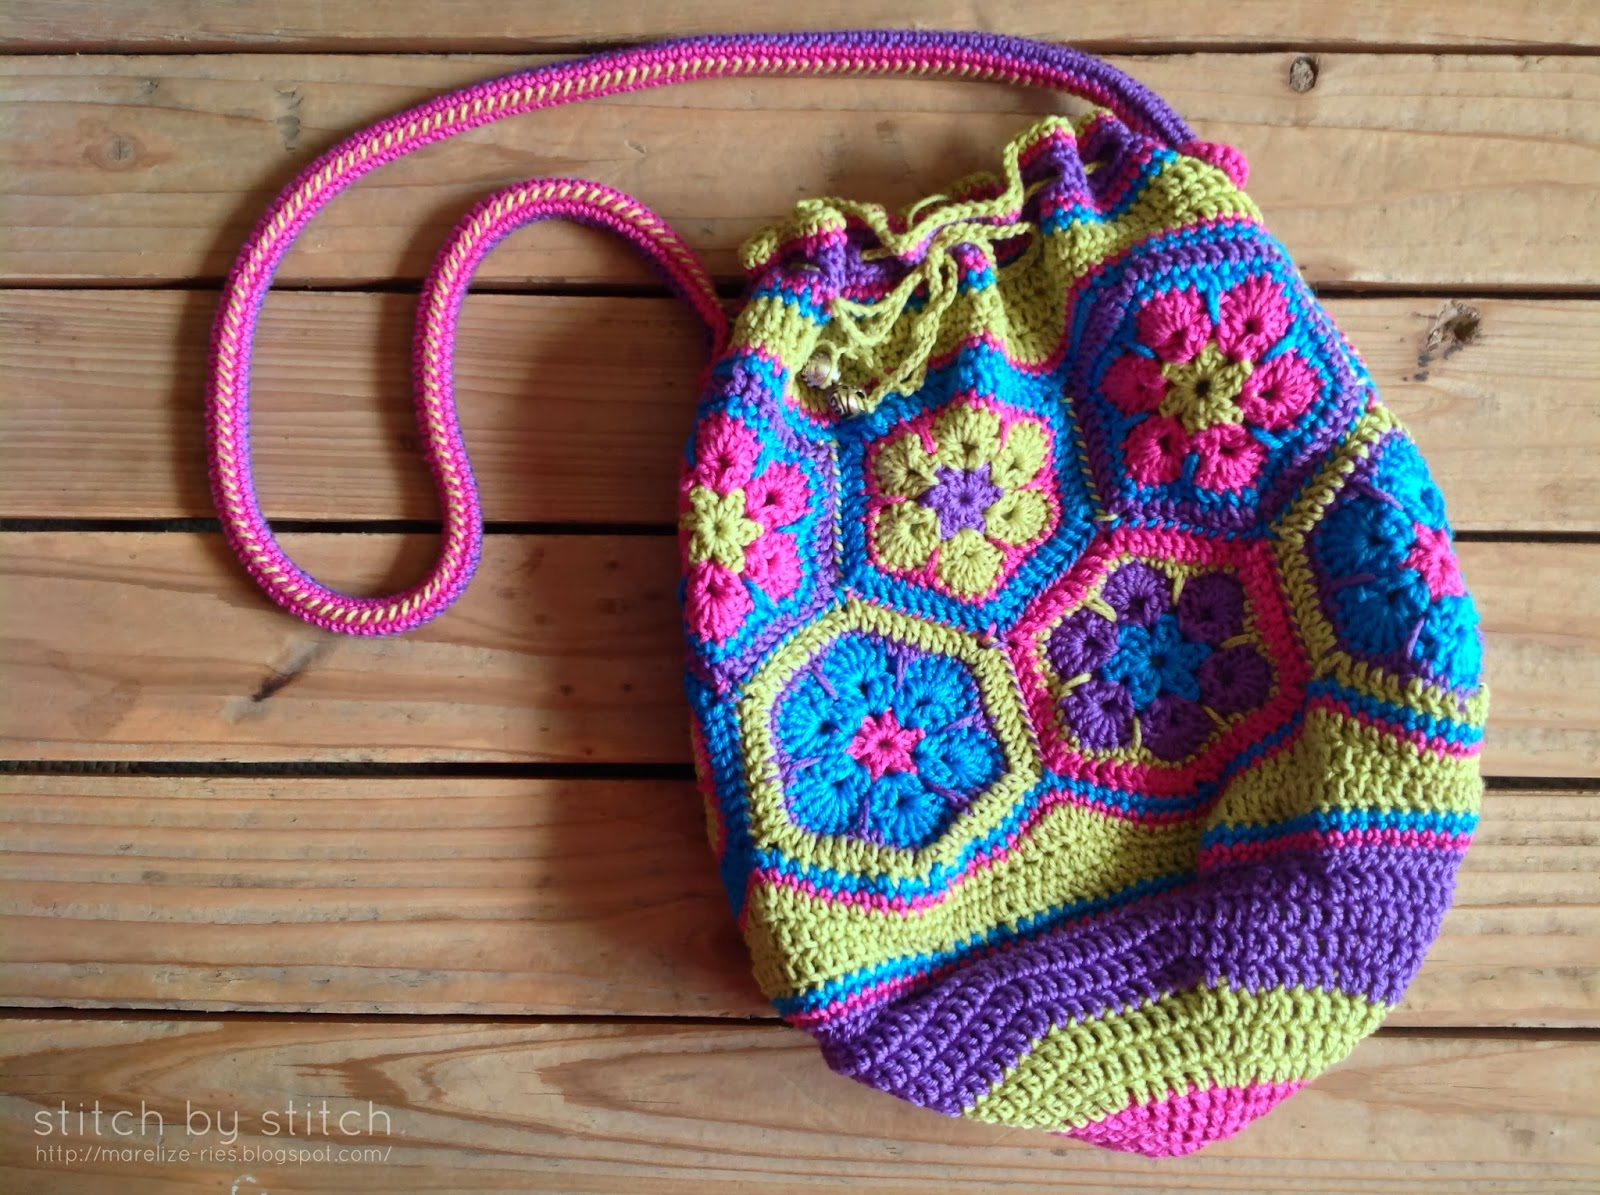 Crochet Bag Tutorial : Stitch by Stitch: African Flower Crochet Bag - Lining Tutorial